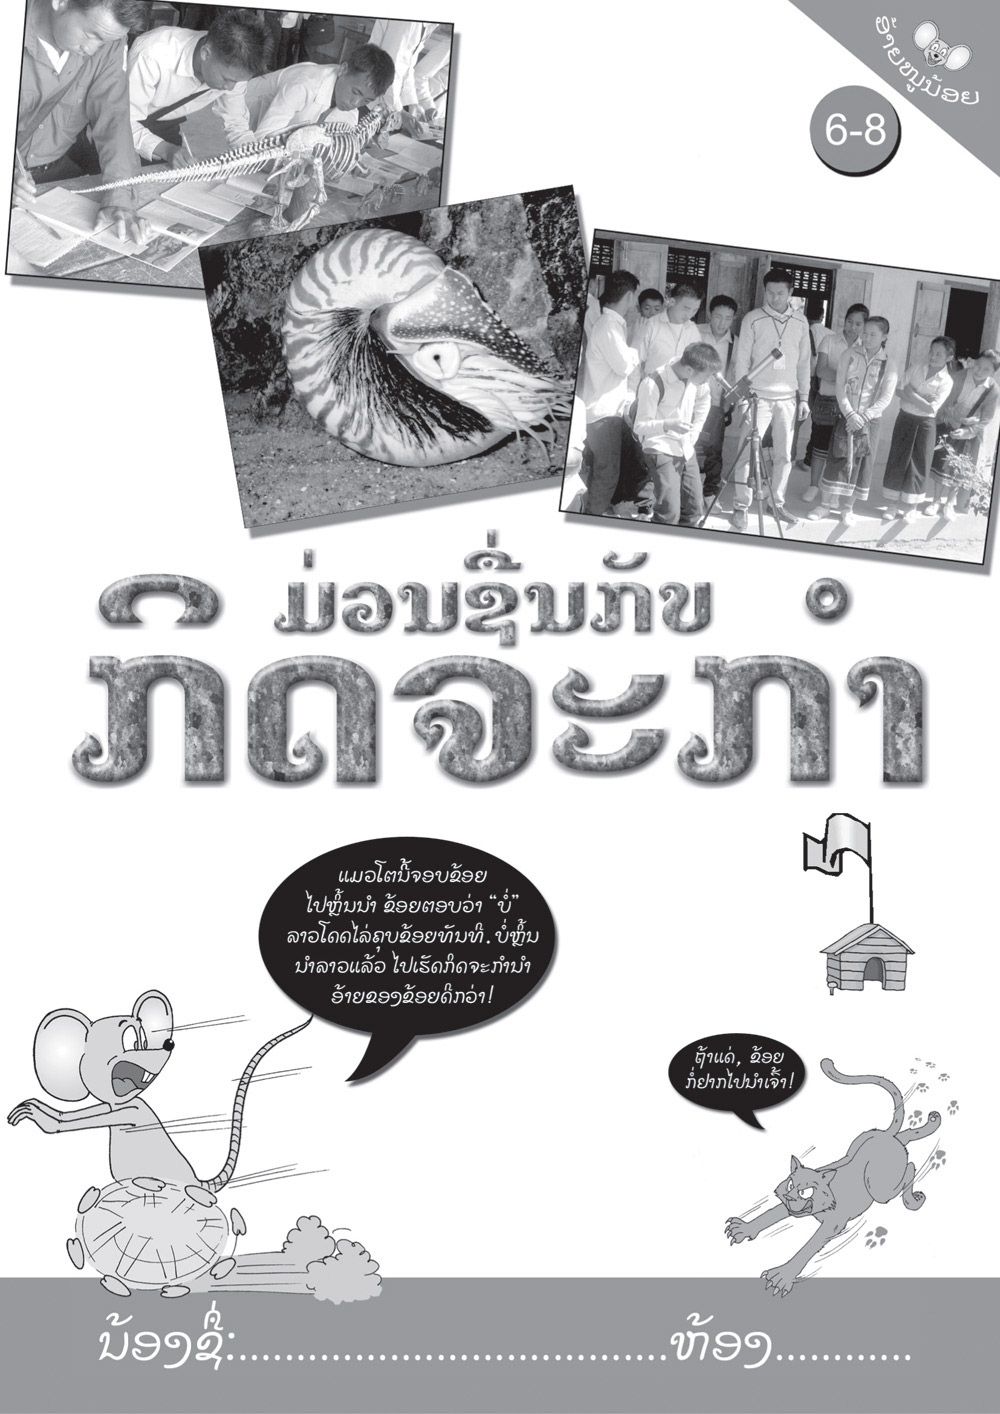 Discovery Day Book Grades 6-8 large book cover, published in Lao language